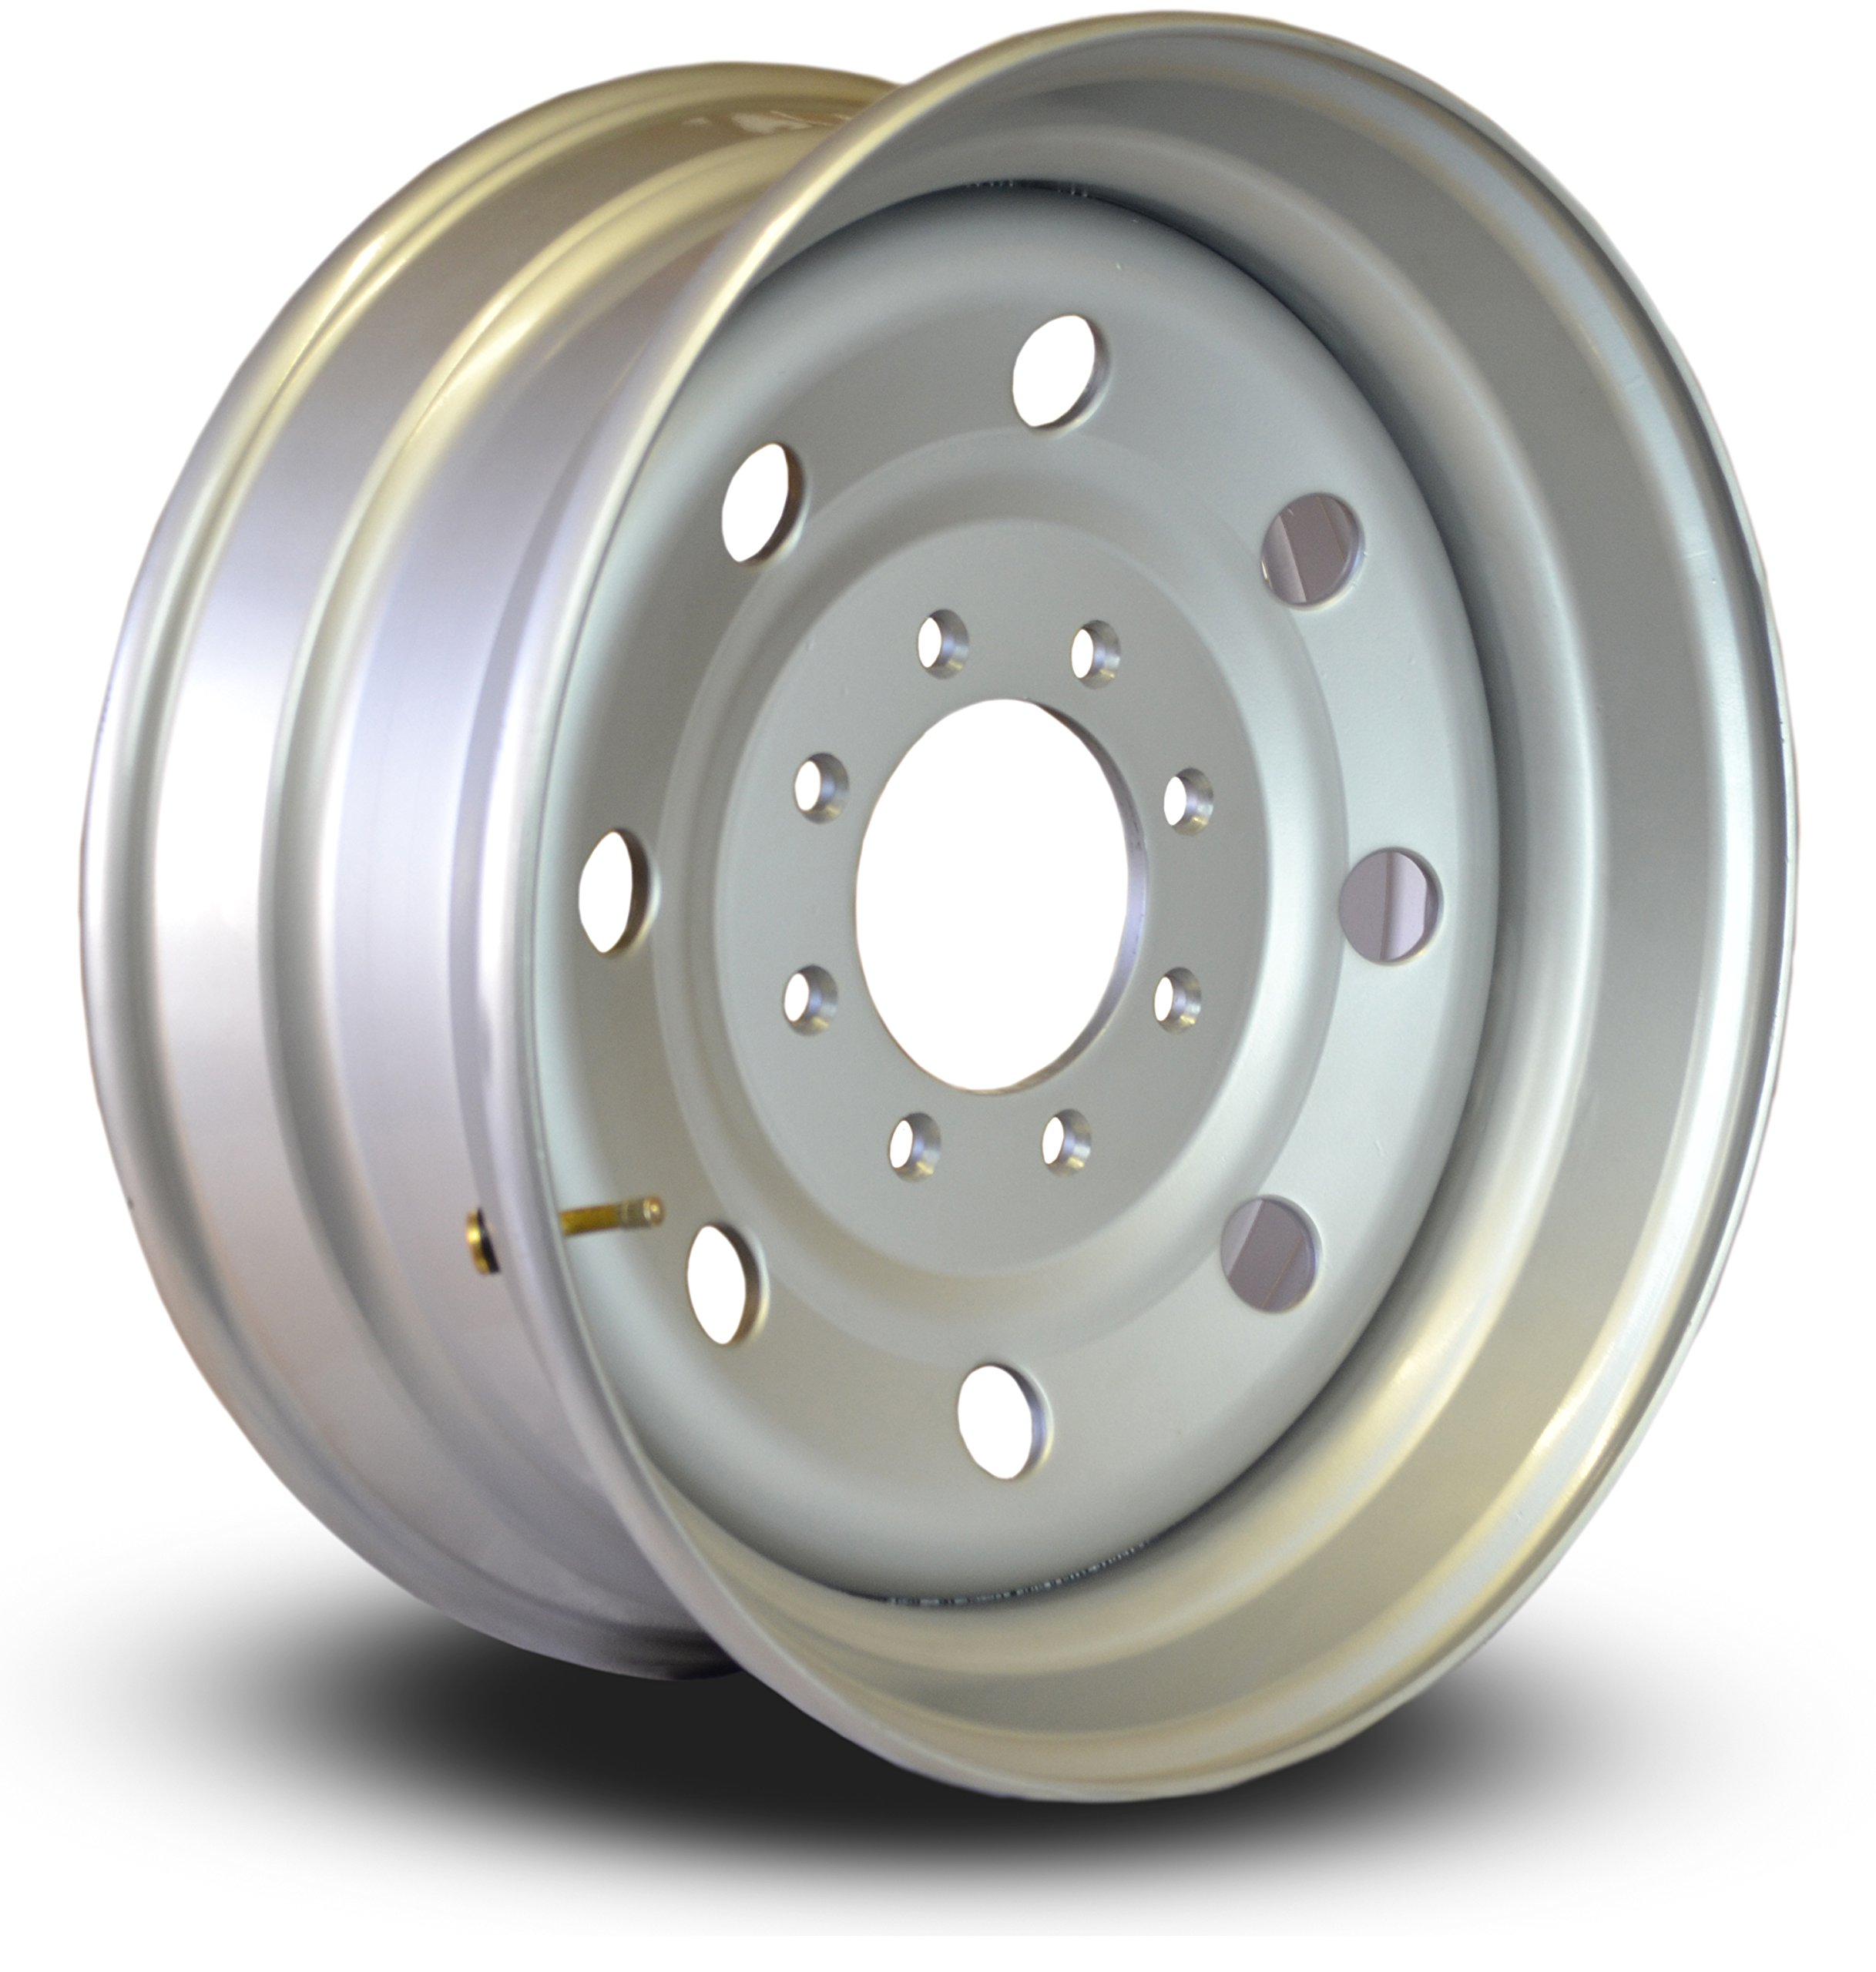 19.5 x6'' Steel Wheels (235/80R16 and 235/85R16 Trailer Tire Replacement. Perfect for Horse Trailers, Stock Trailers, Dump Trailer, and Flatbed conversion to 225/70R19.5)